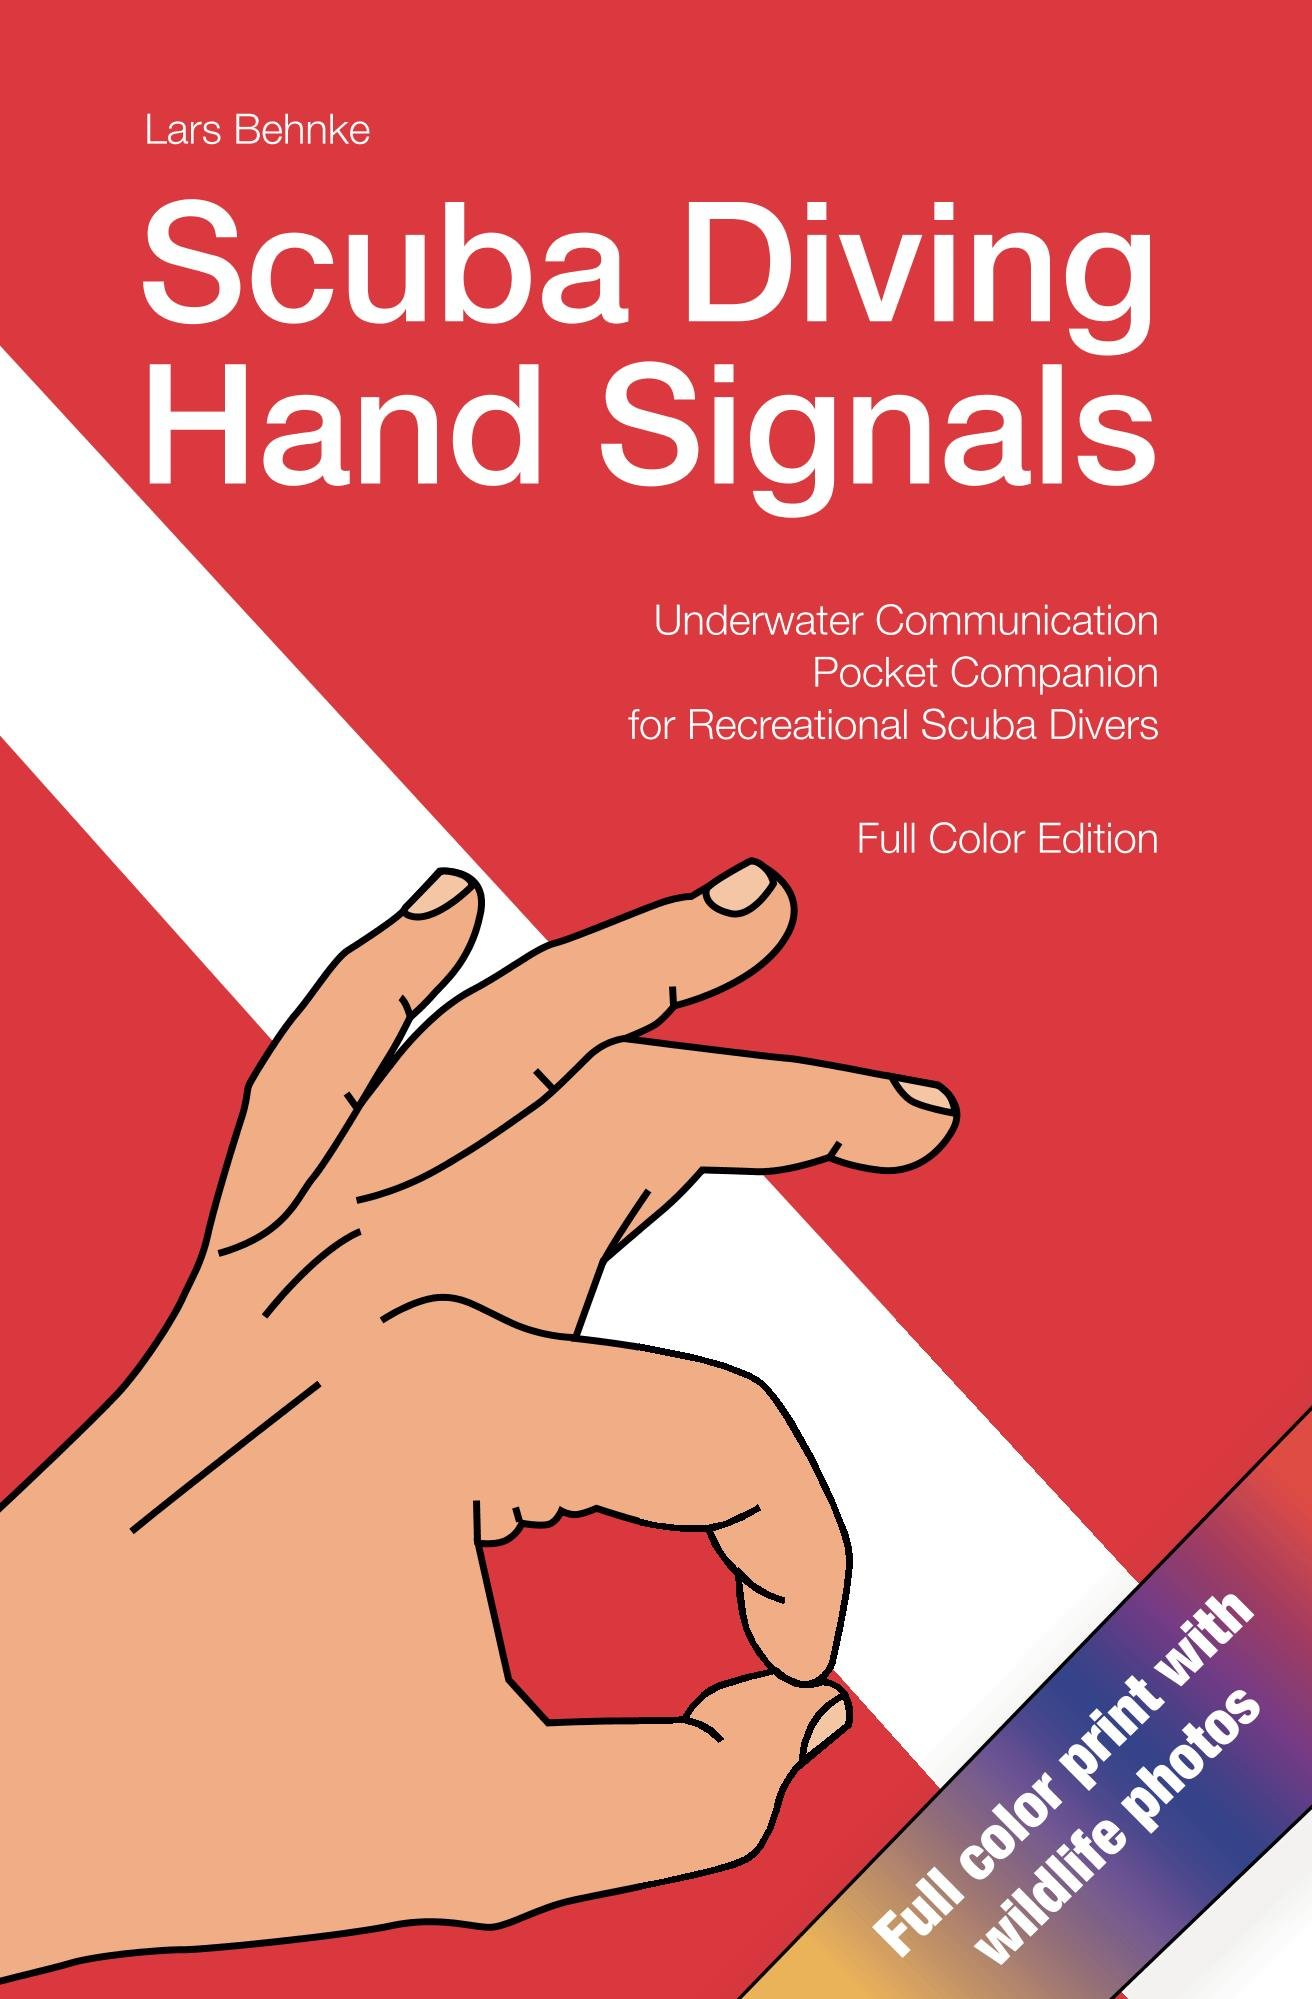 Download Scuba Diving Hand Signals: Underwater Communication Pocket Companion For Recreational Scuba Divers (English Edition) 